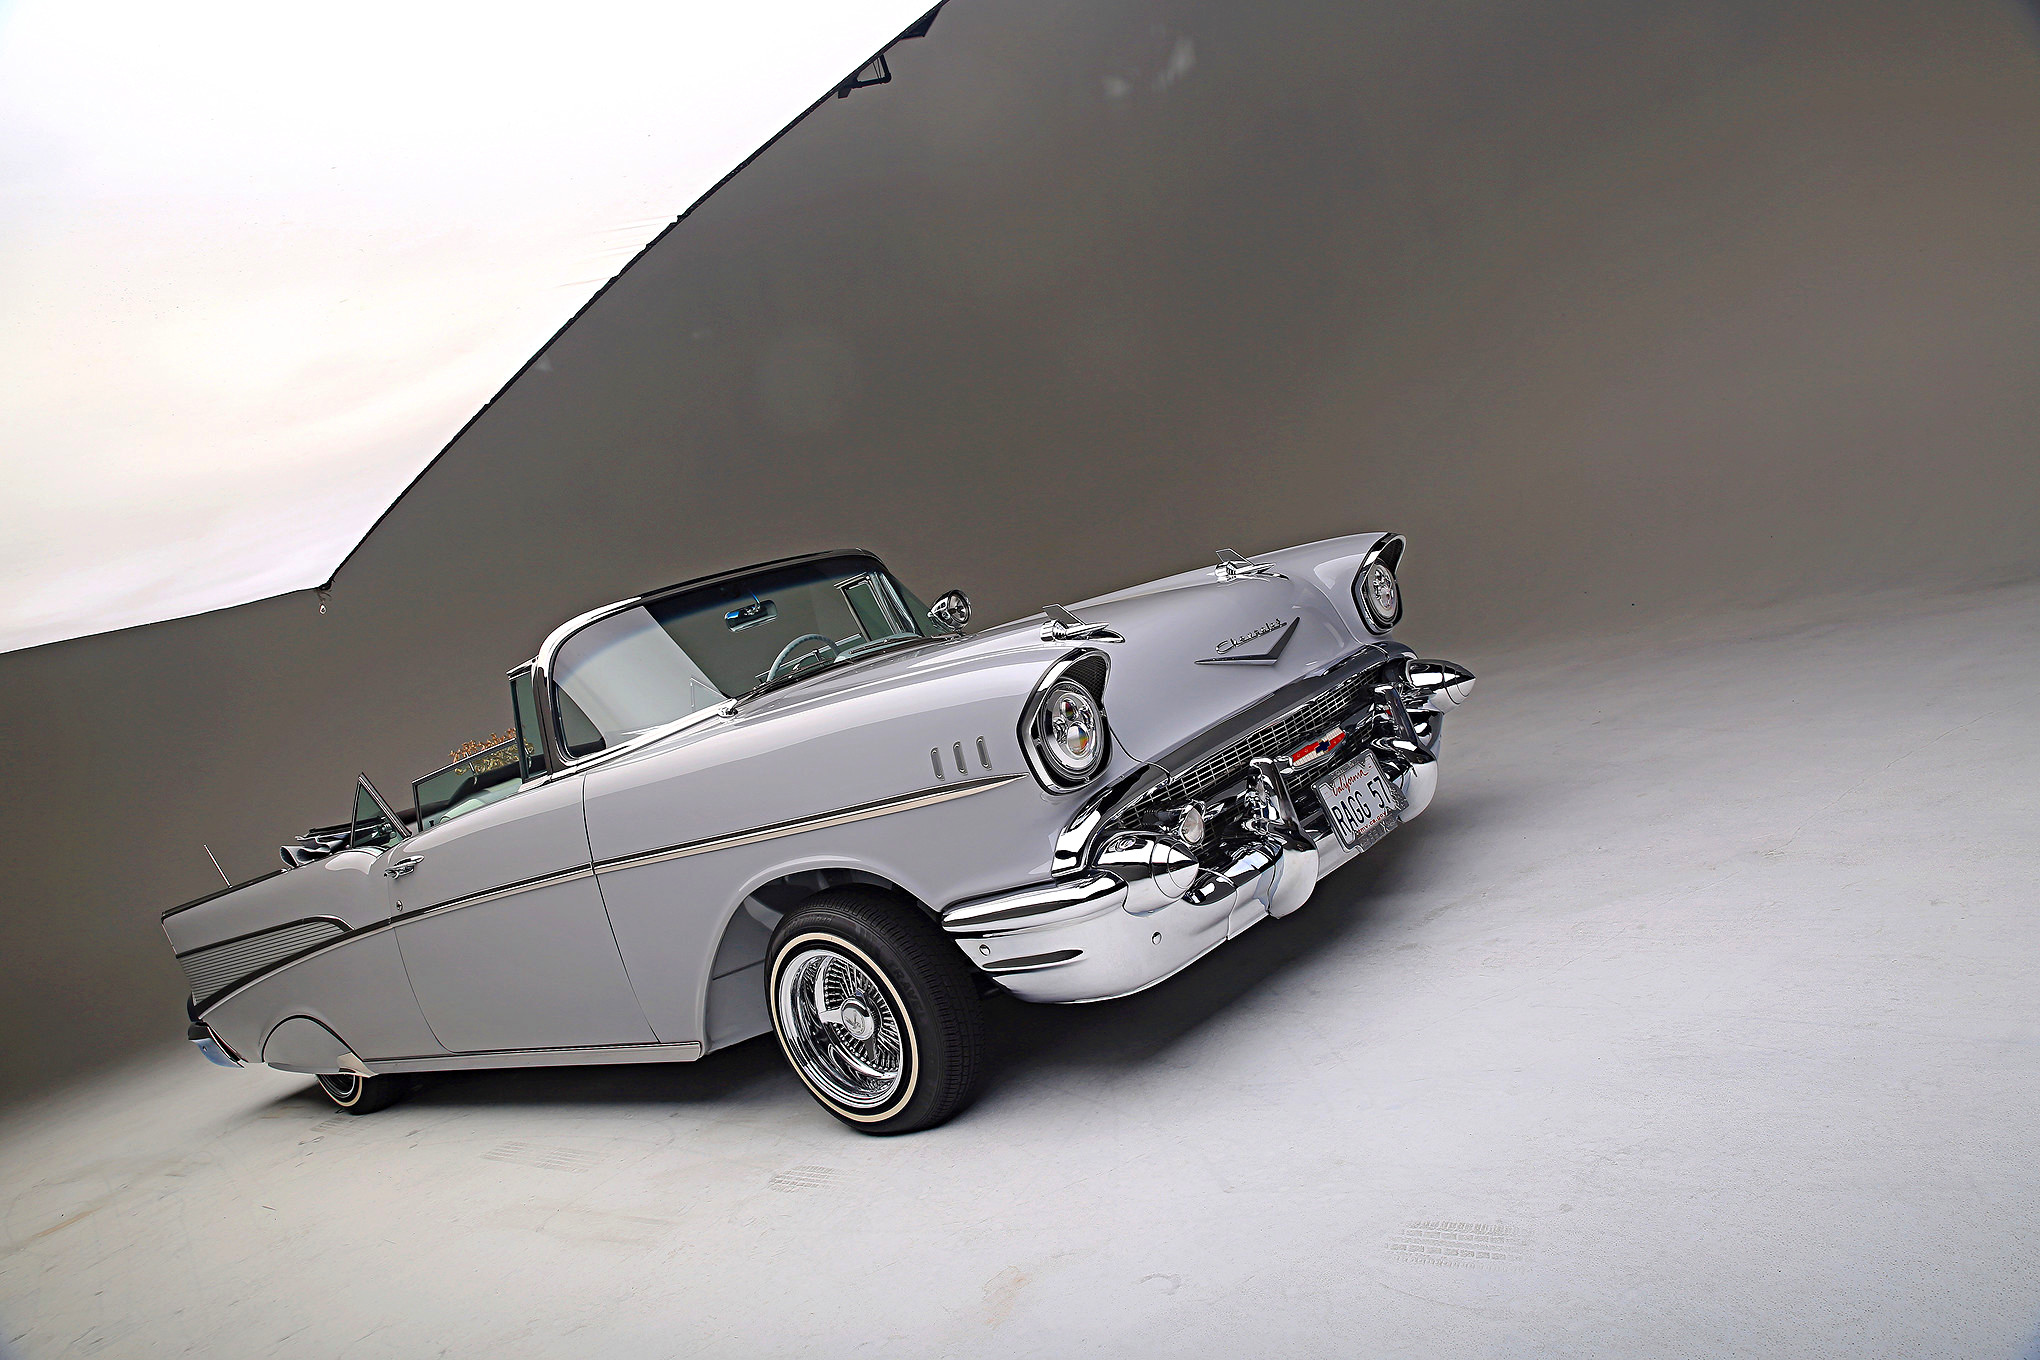 1957 Chevrolet Bel Air Convertible Hd Wallpaper Background Image Chevy Bellaire Lowrider Wallpapers Id742745